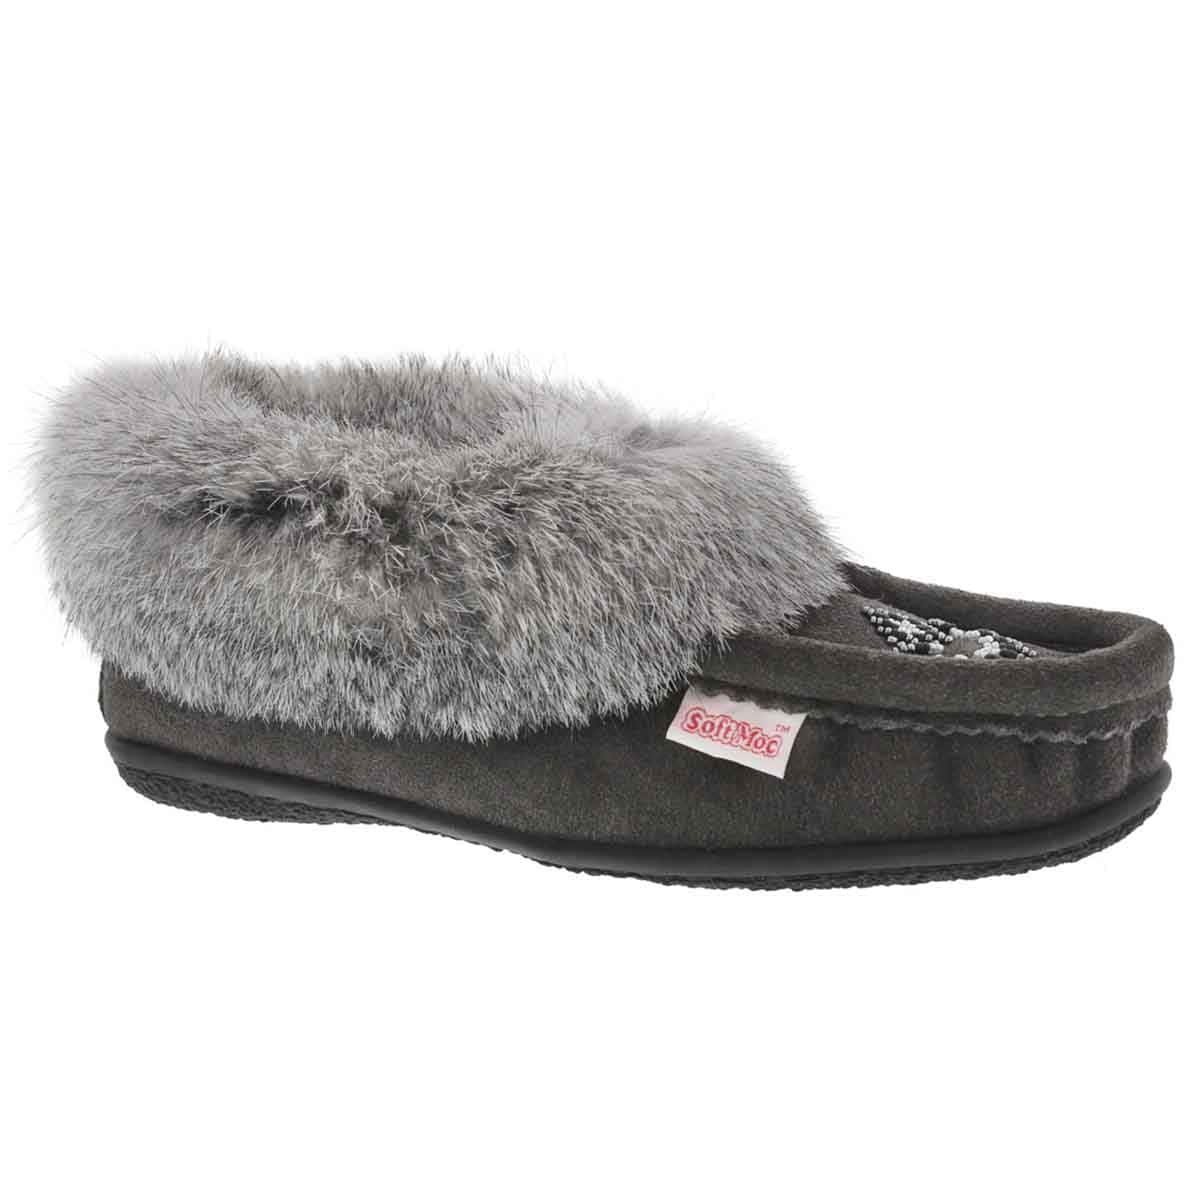 SoftMoc Women's Cute 4 Rabbit Fur Moccasin